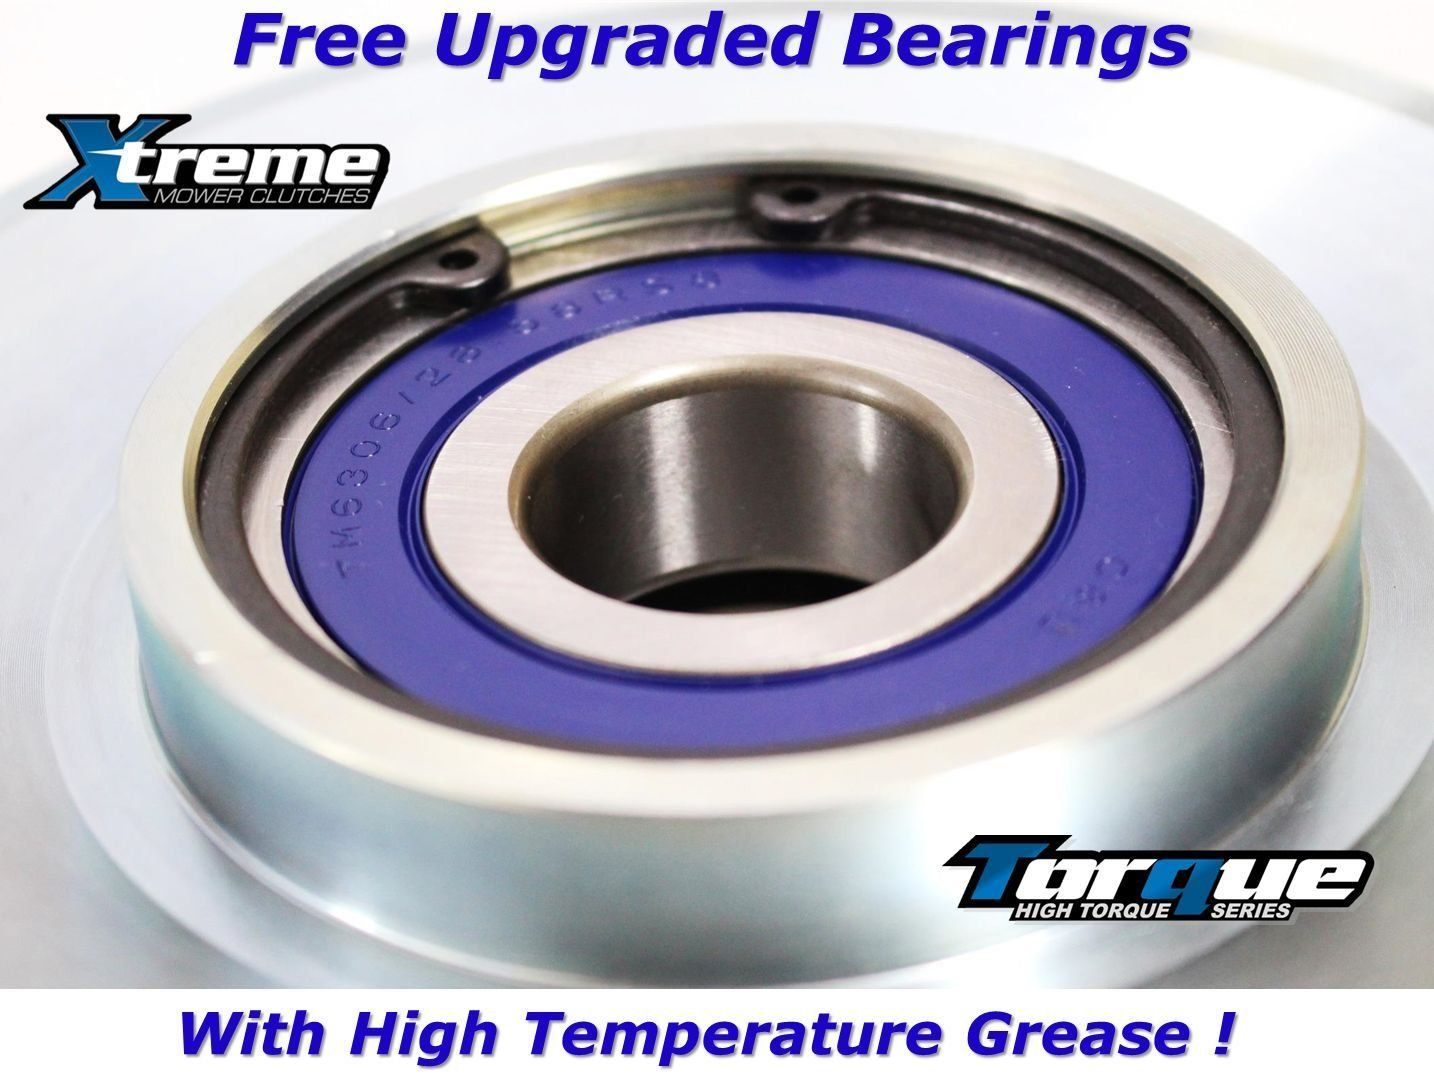 Replaces Great Dane D18000 Pto Clutch Free High Torque And Bearing